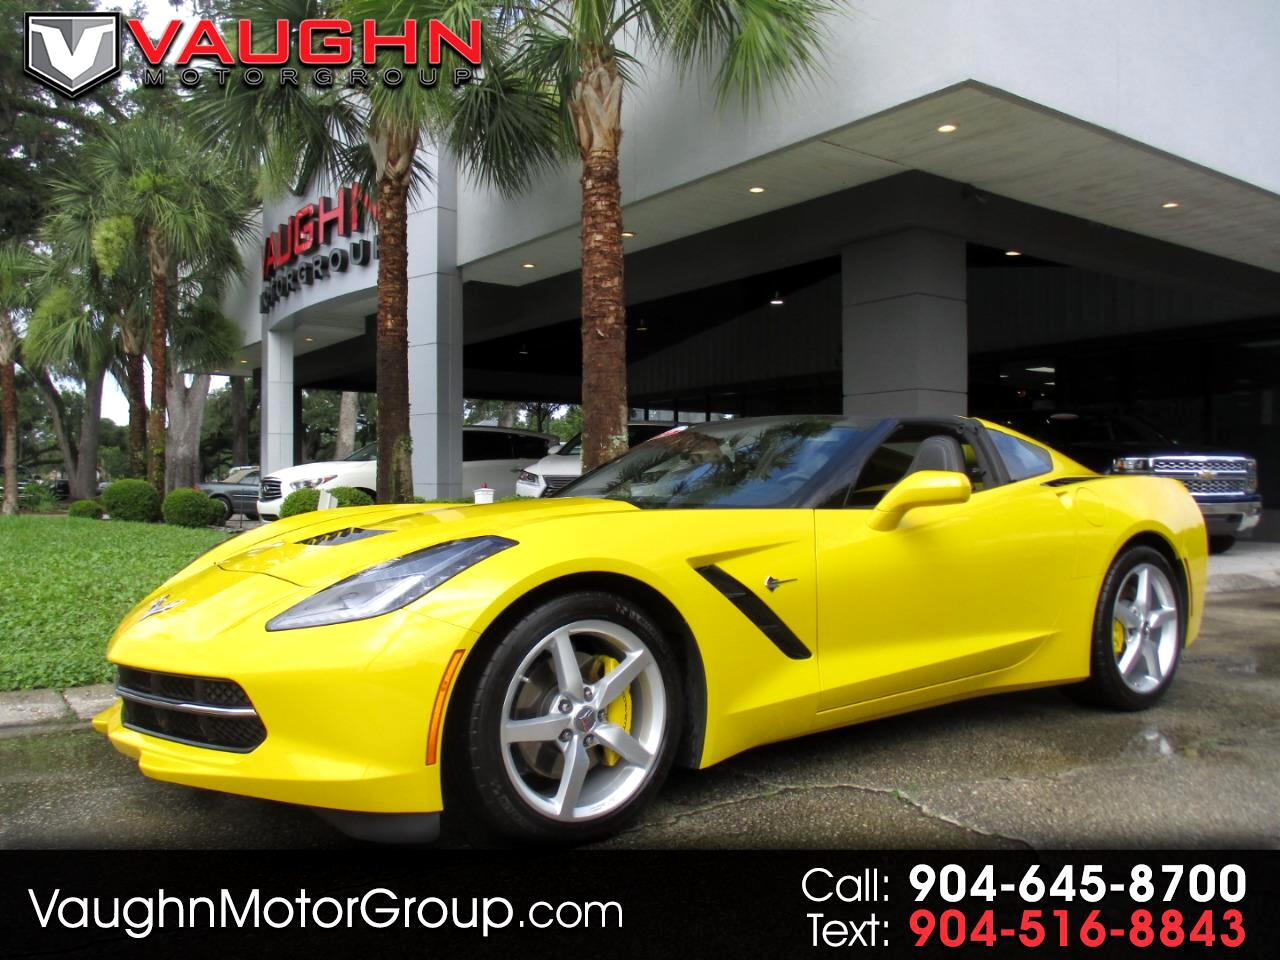 2014 Chevrolet Corvette Stingray 2dr Cpe w/1LT